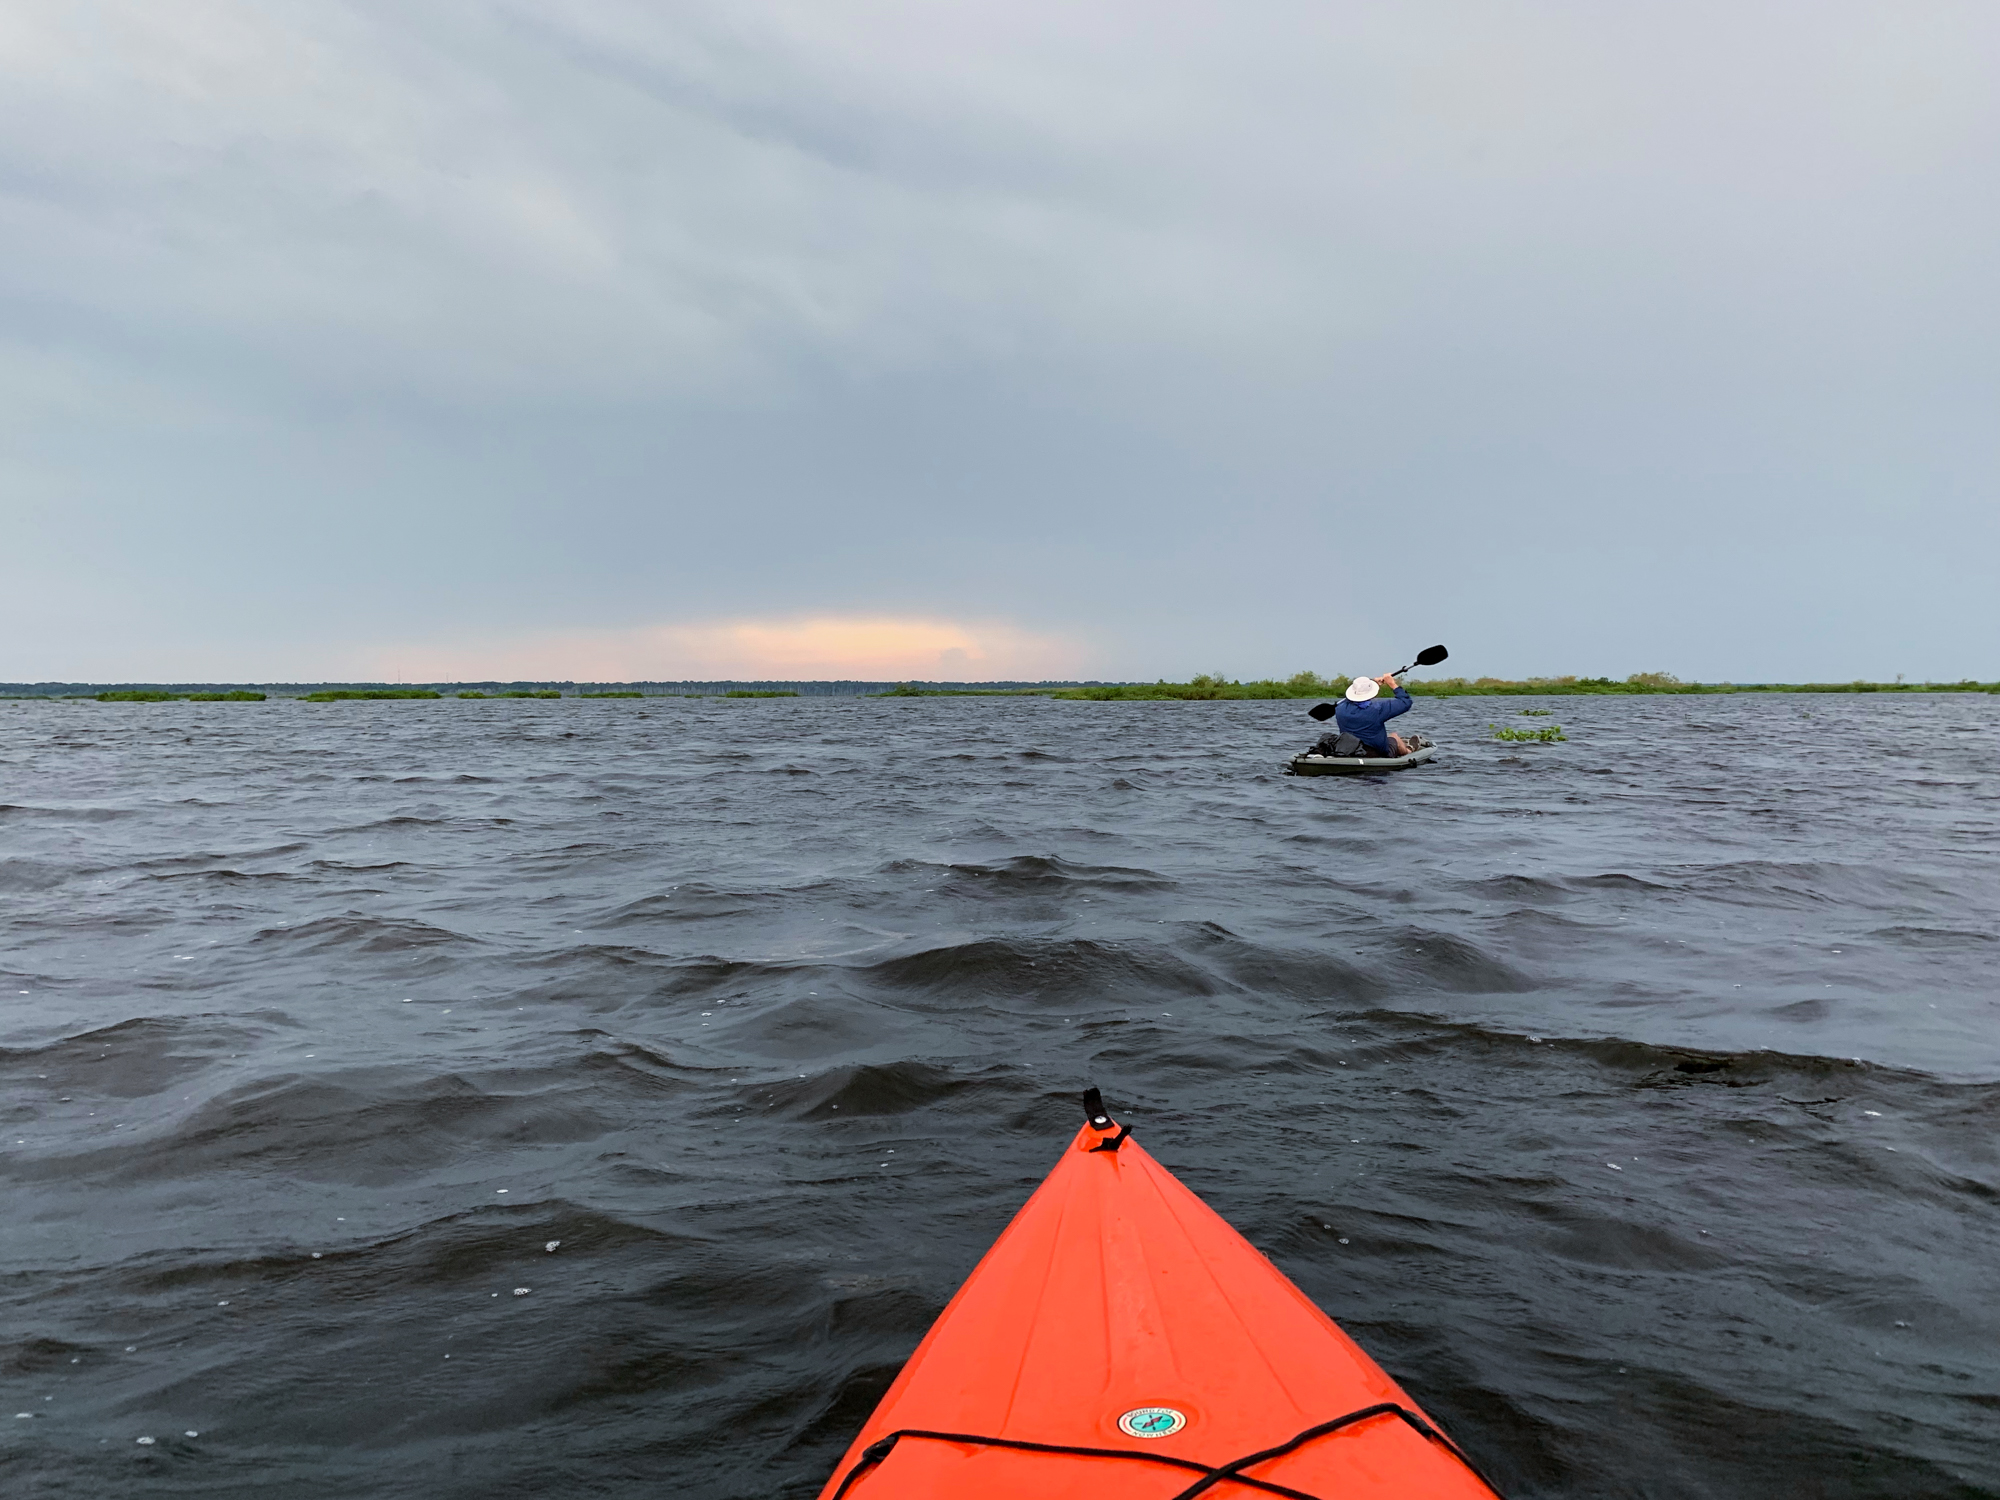 Alex and I paddle back toward the car. The storm made the water feel more like an ocean than a lake.